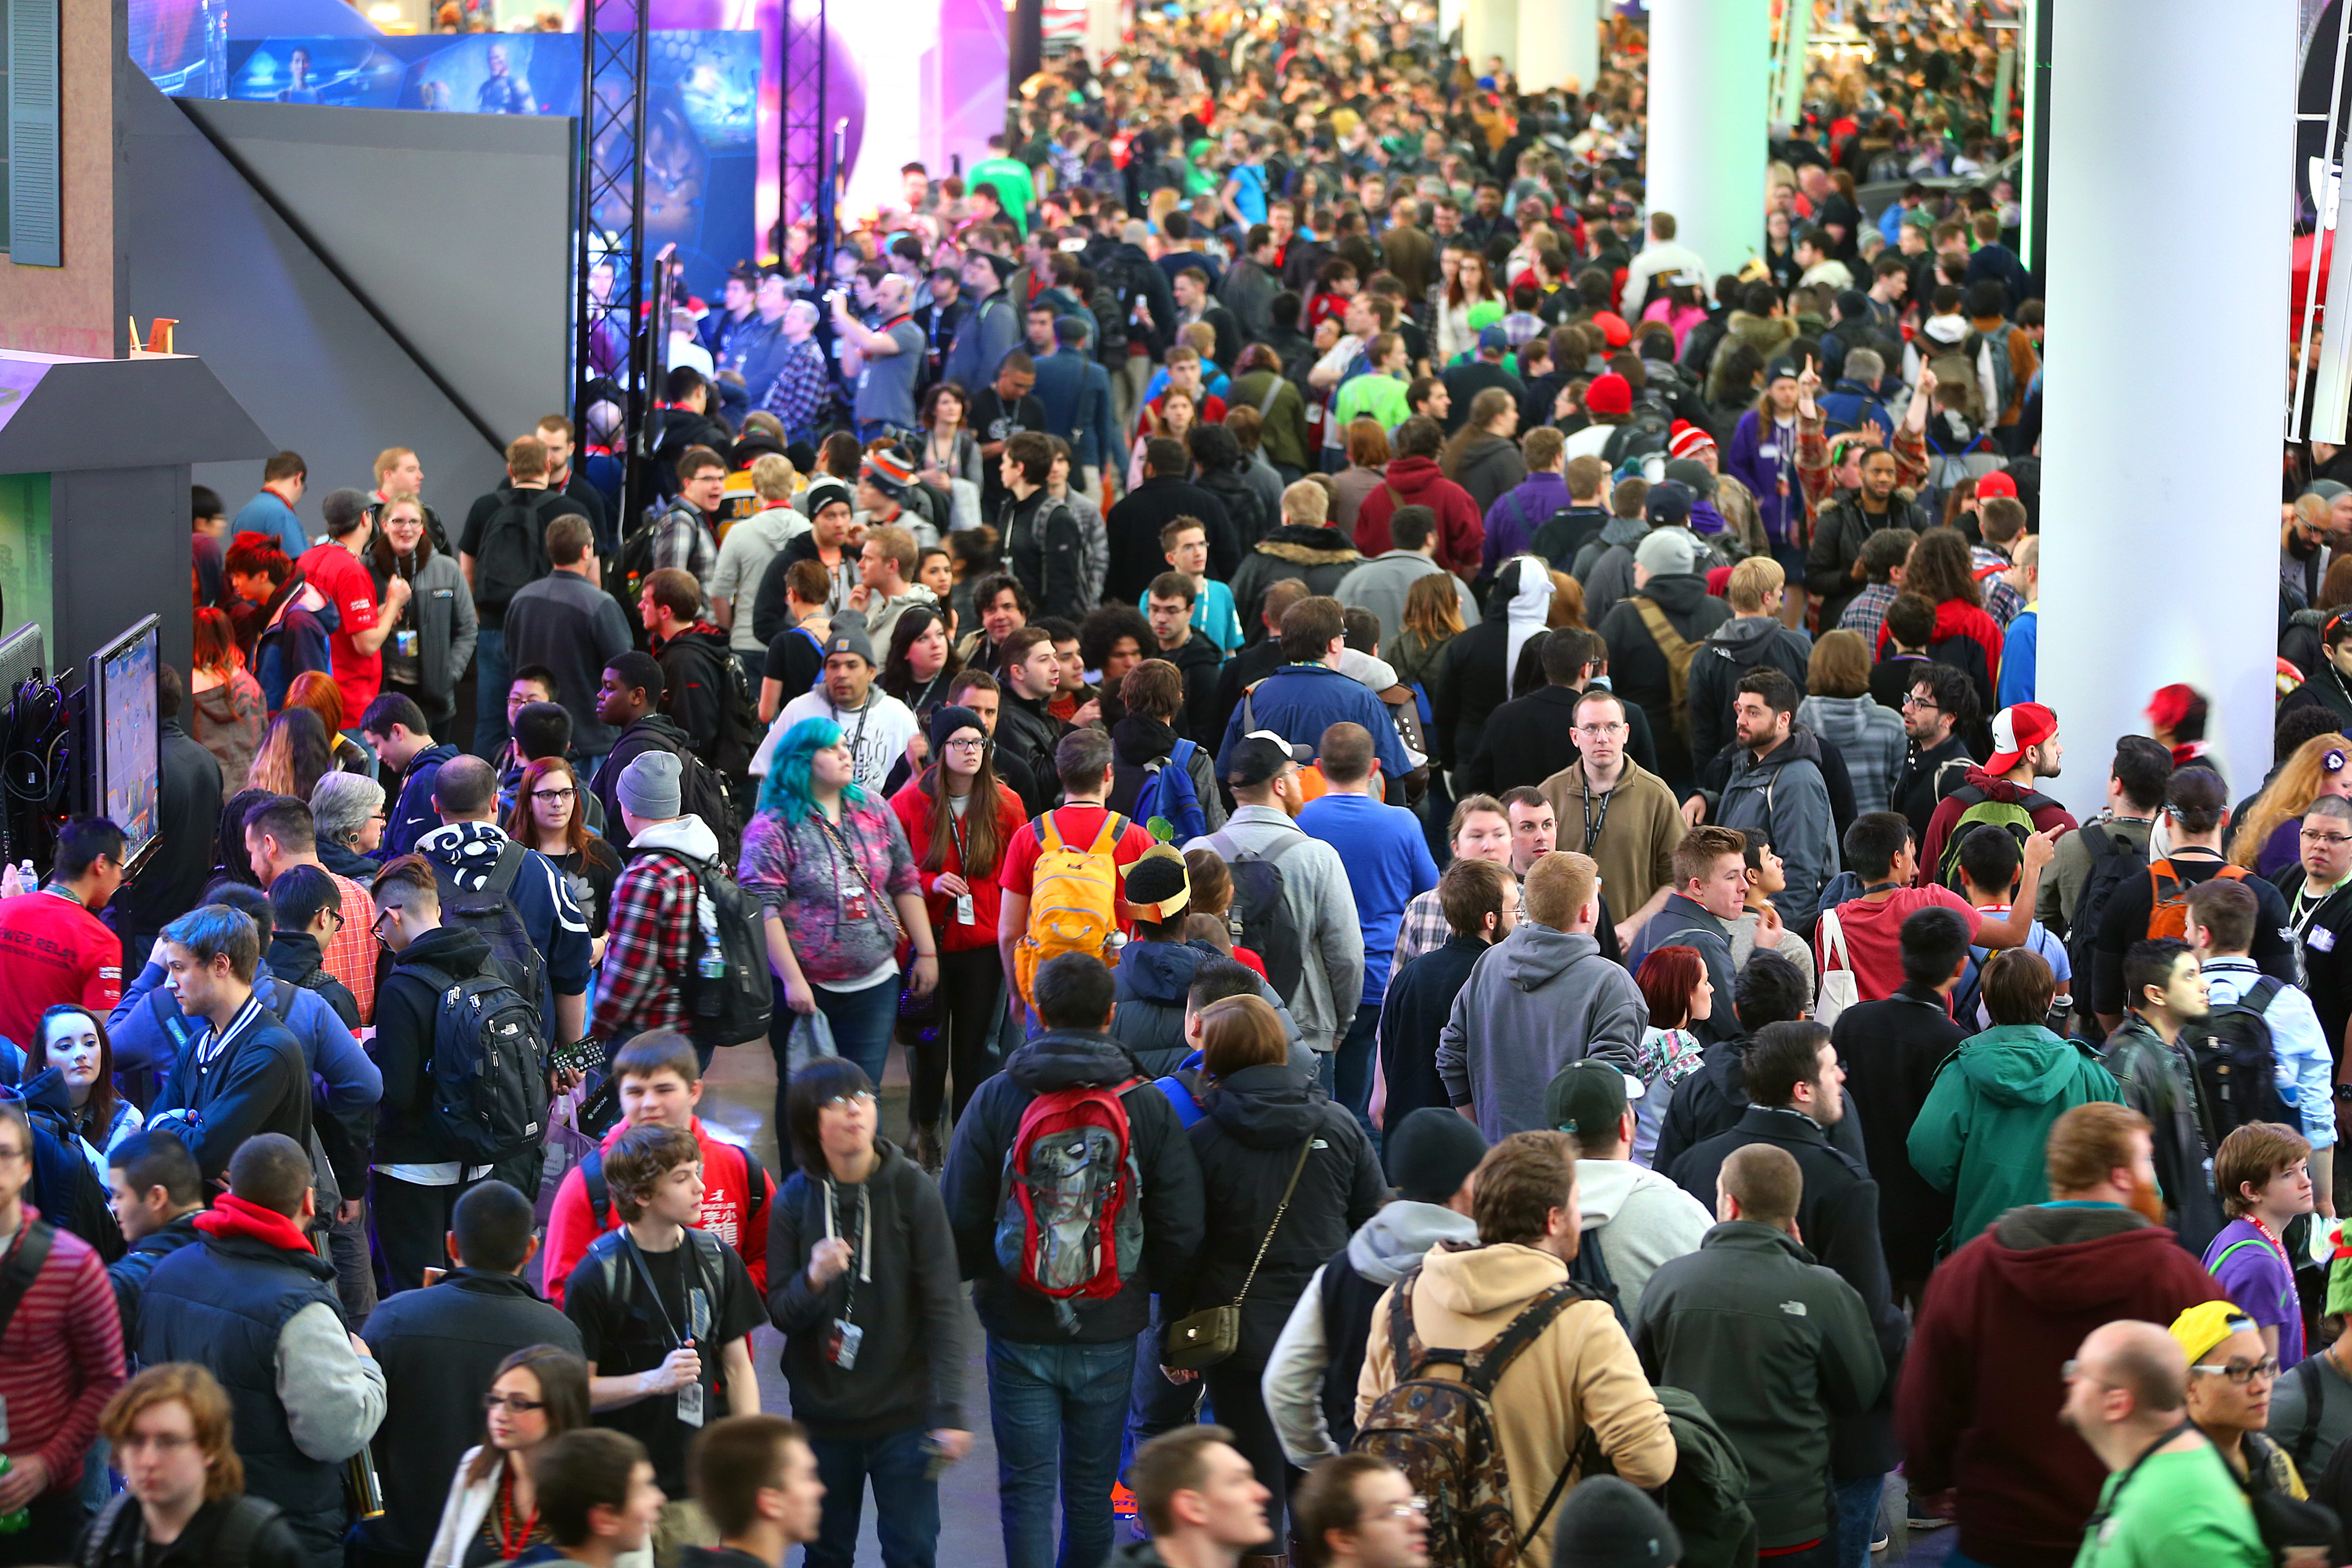 A photo of the crowd attending PAX East 2015